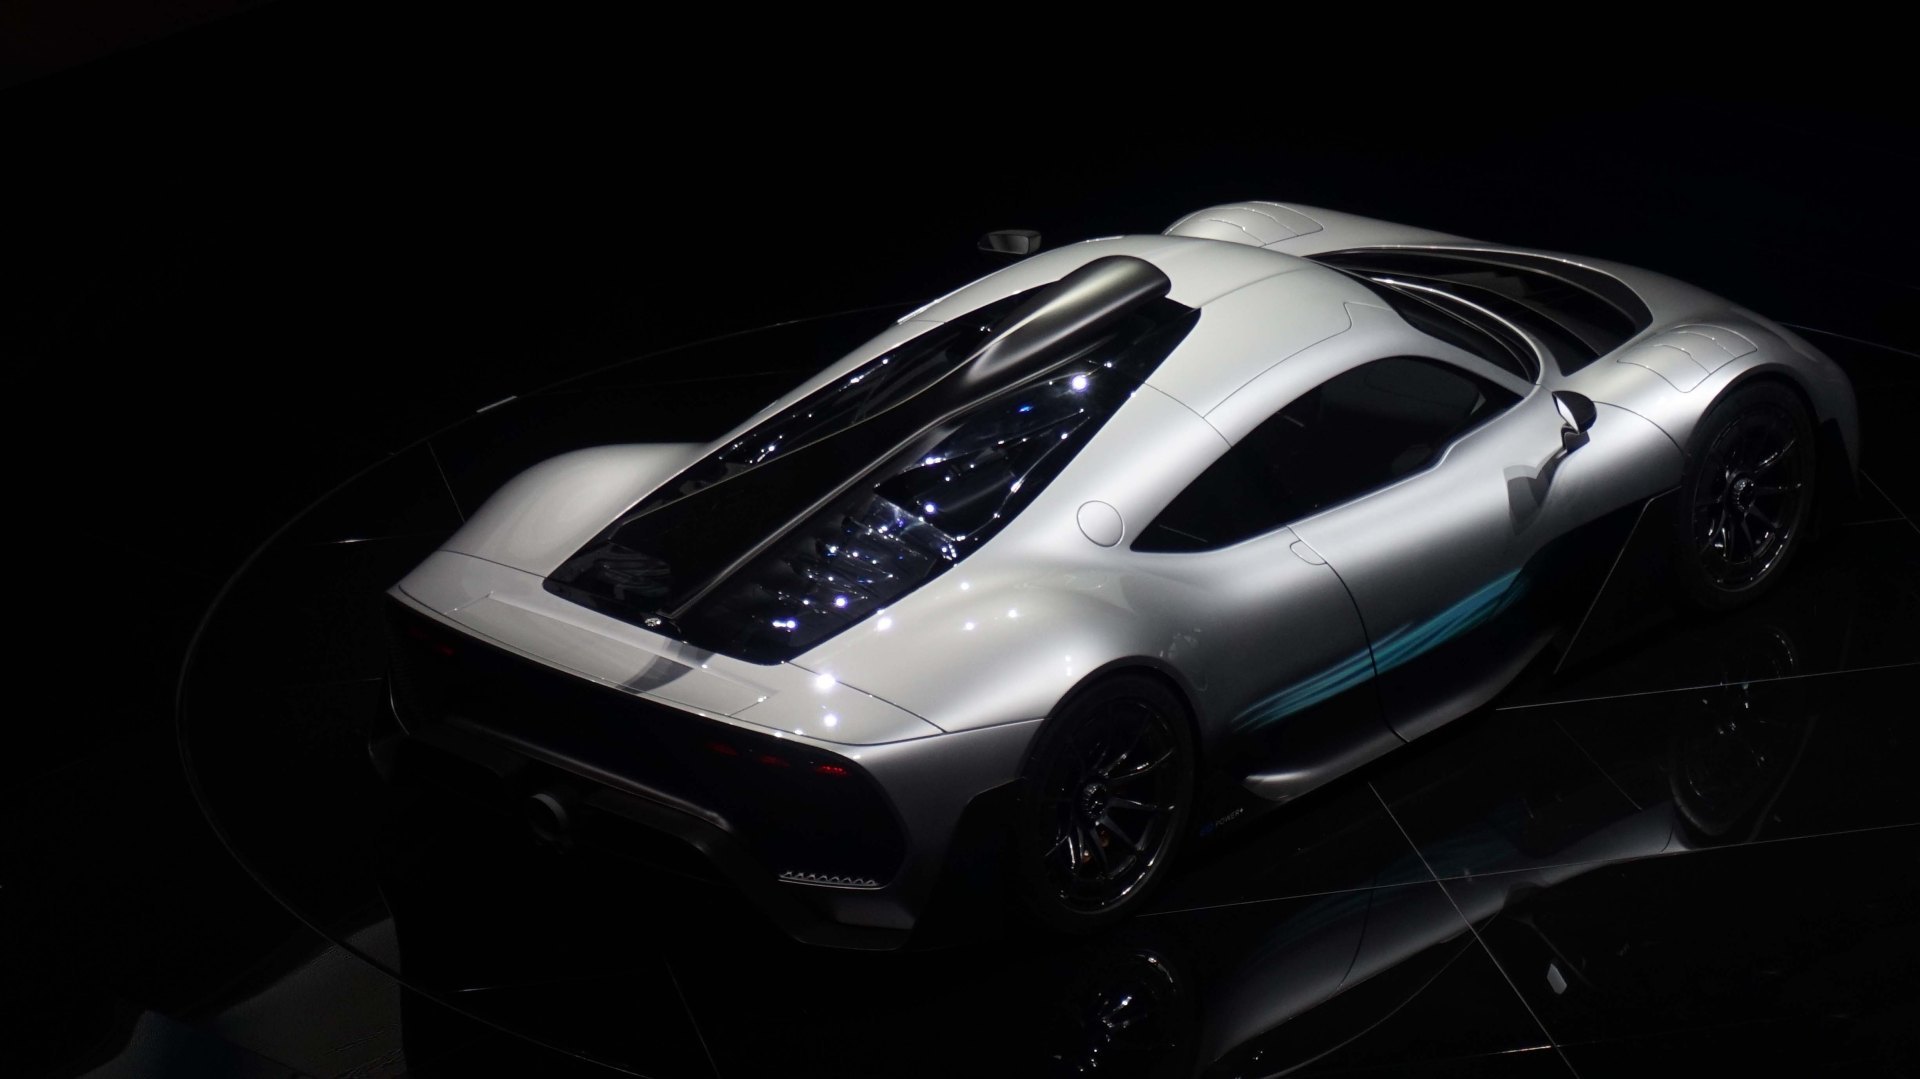 mercedes-amg-project-one-hypercar-iaa-2017-12